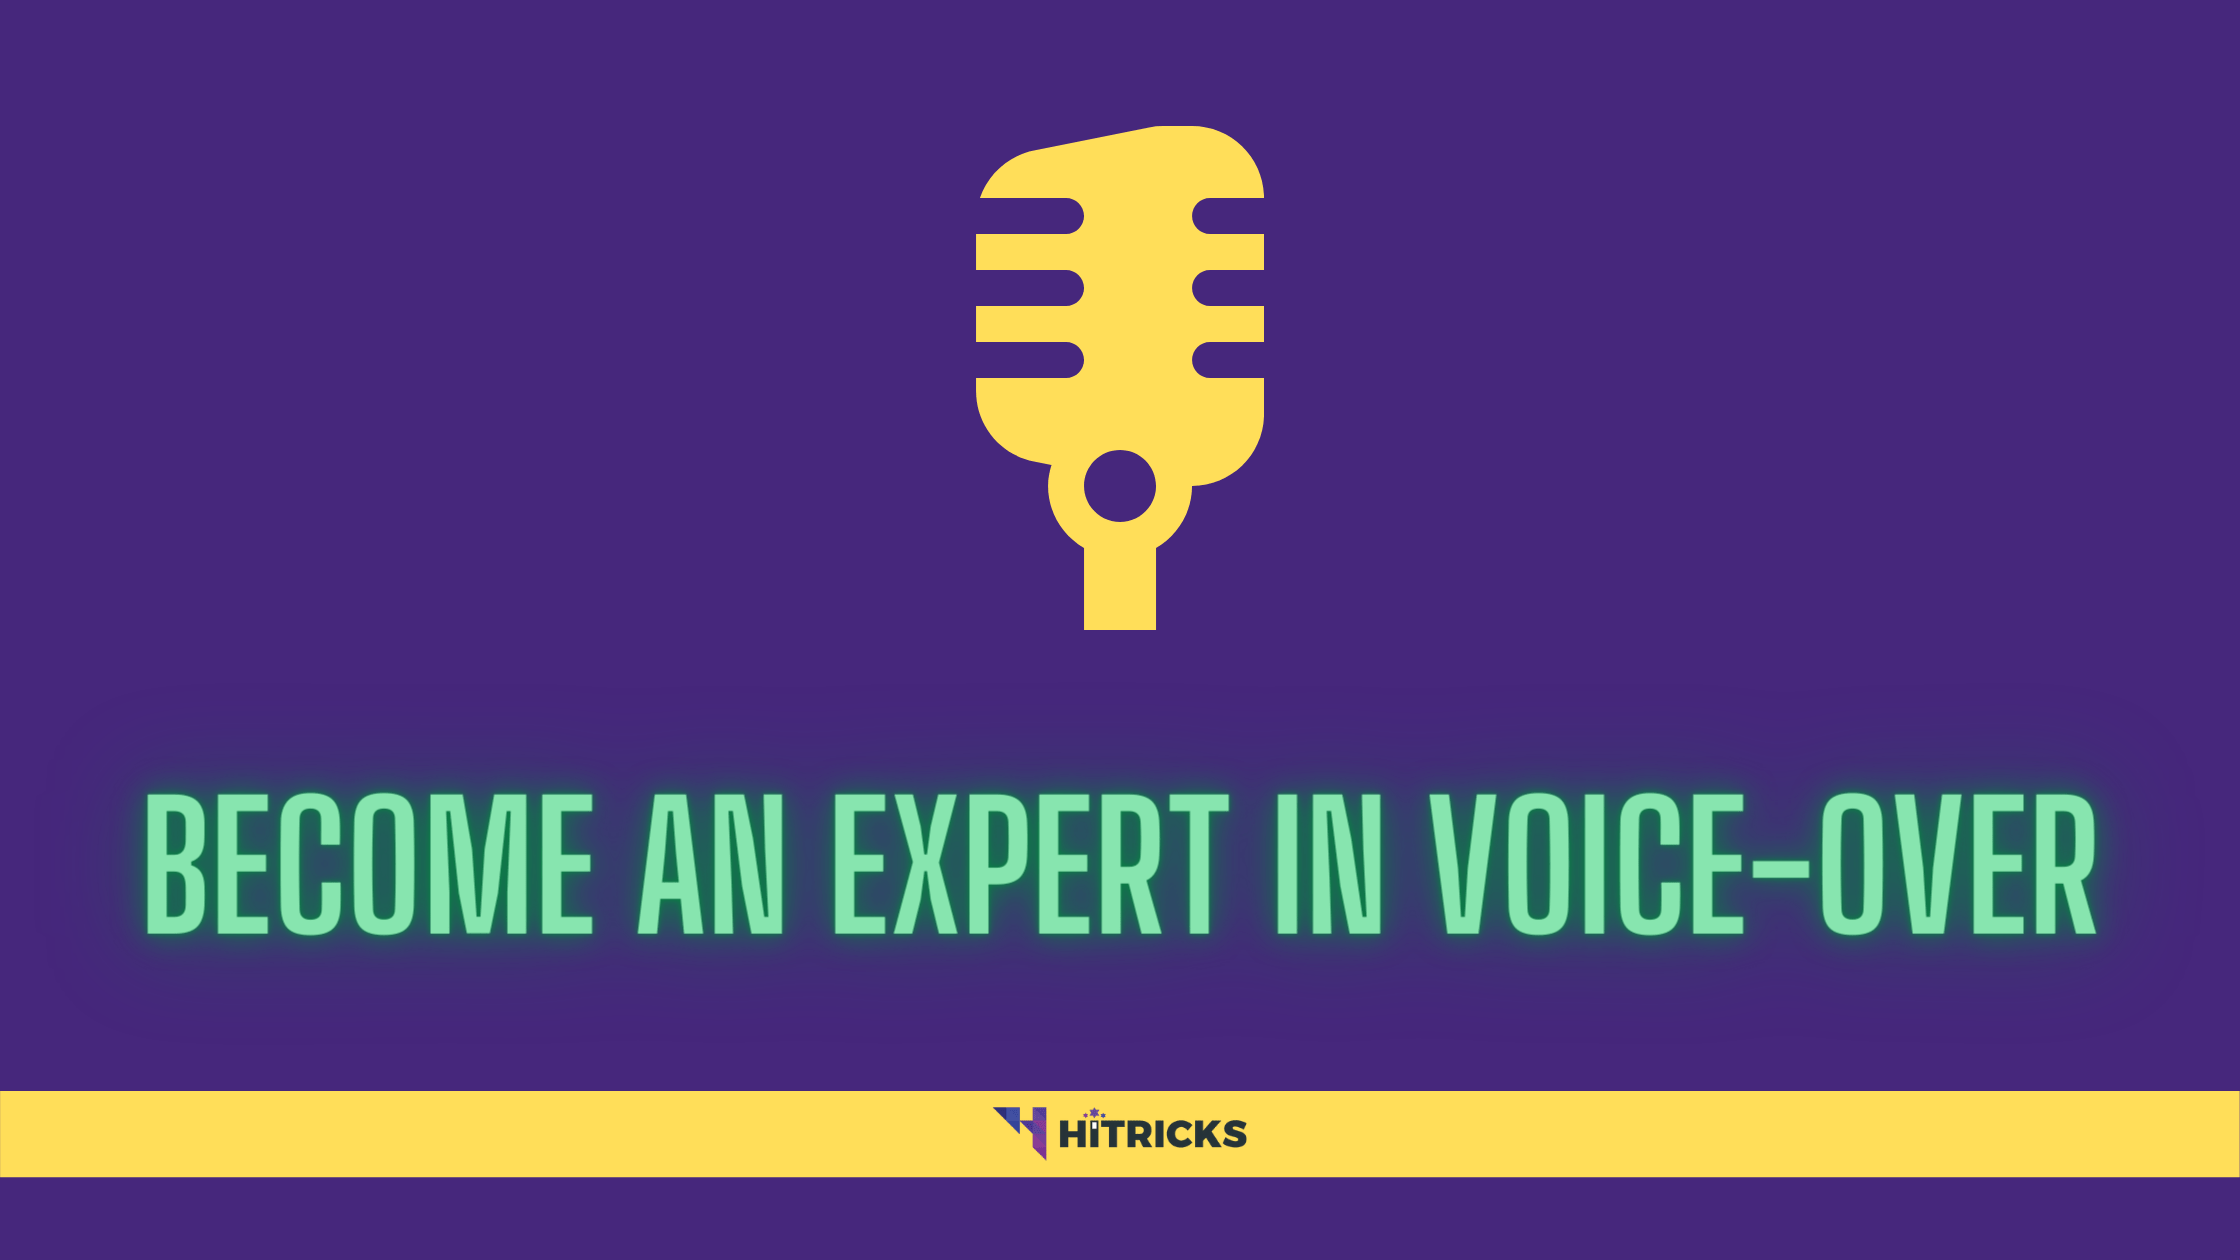 Become an Expert in Voice Over by Following These Simple Tips